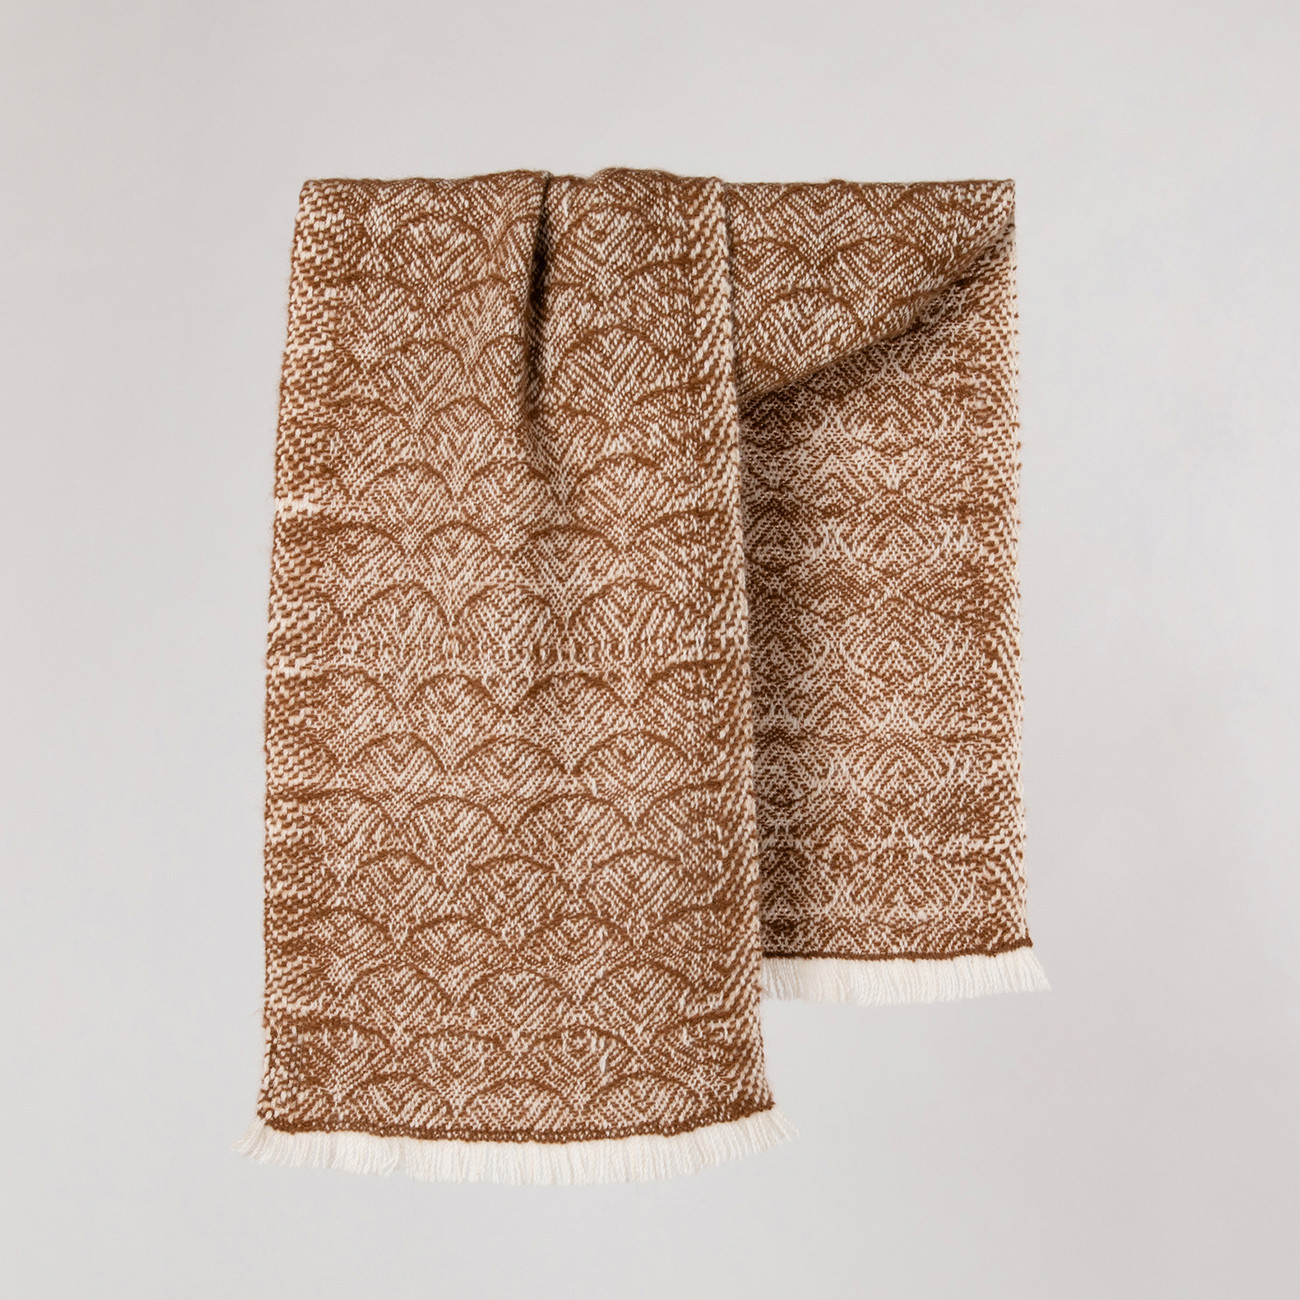 Handwoven Feather Scarf - Natural Caramel and White Alpaca - 0